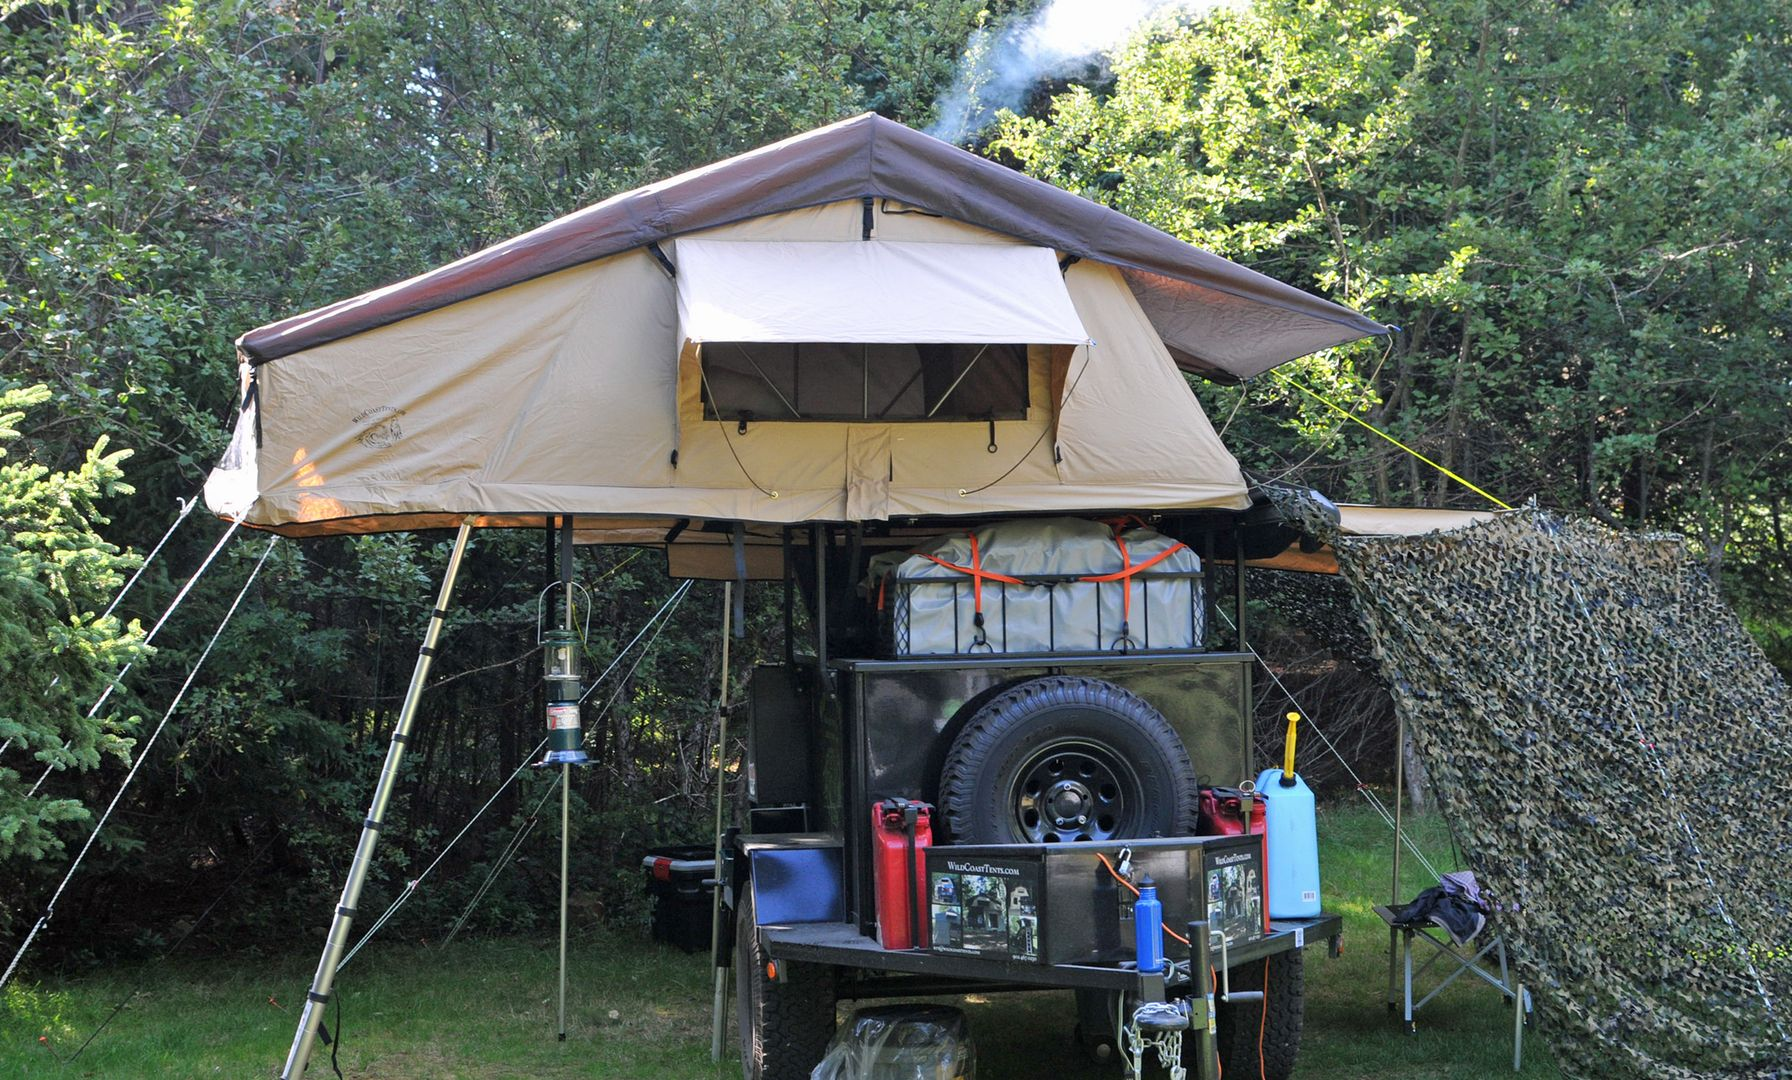 Outpost Roof Top Tent One of our biggest roof top tents Perfect for a family c&ing. Comes with Annex room for additional space for storage change rooom & Outpost Roof Top Tent One of our biggest roof top tents Perfect ...